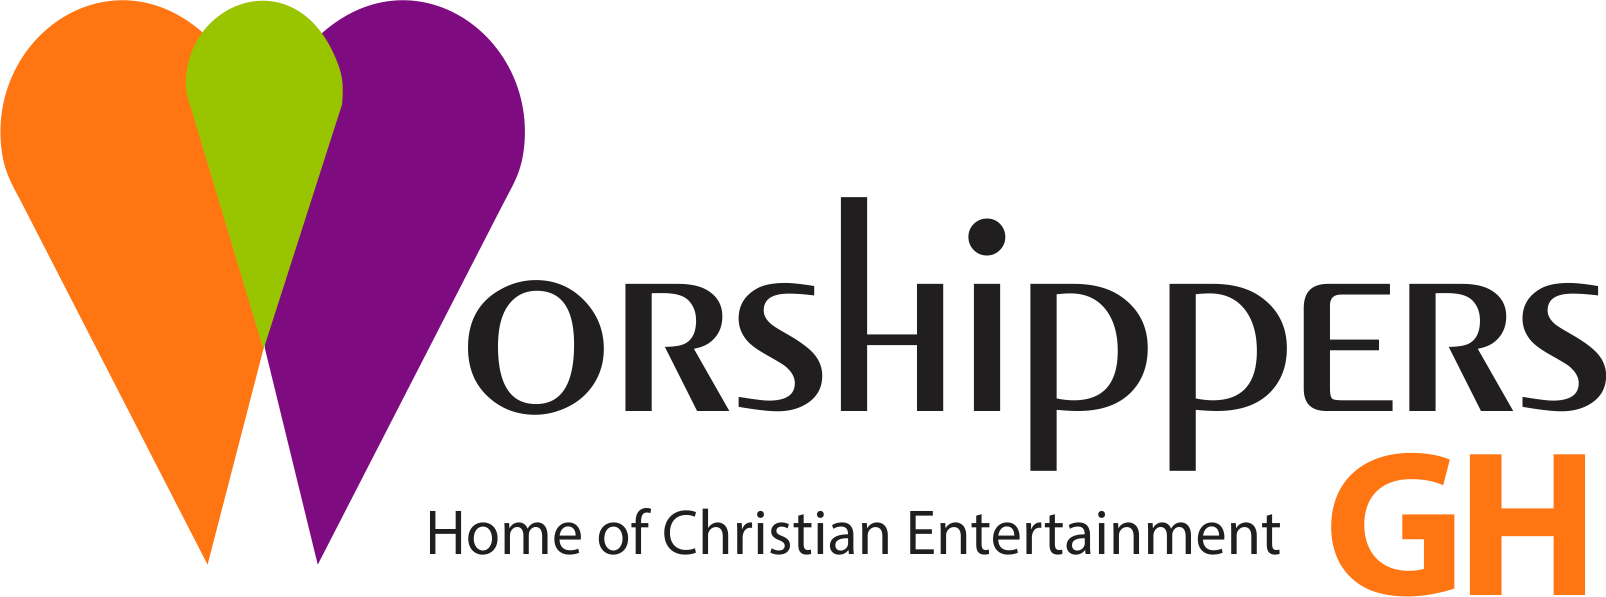 WorshippersGh